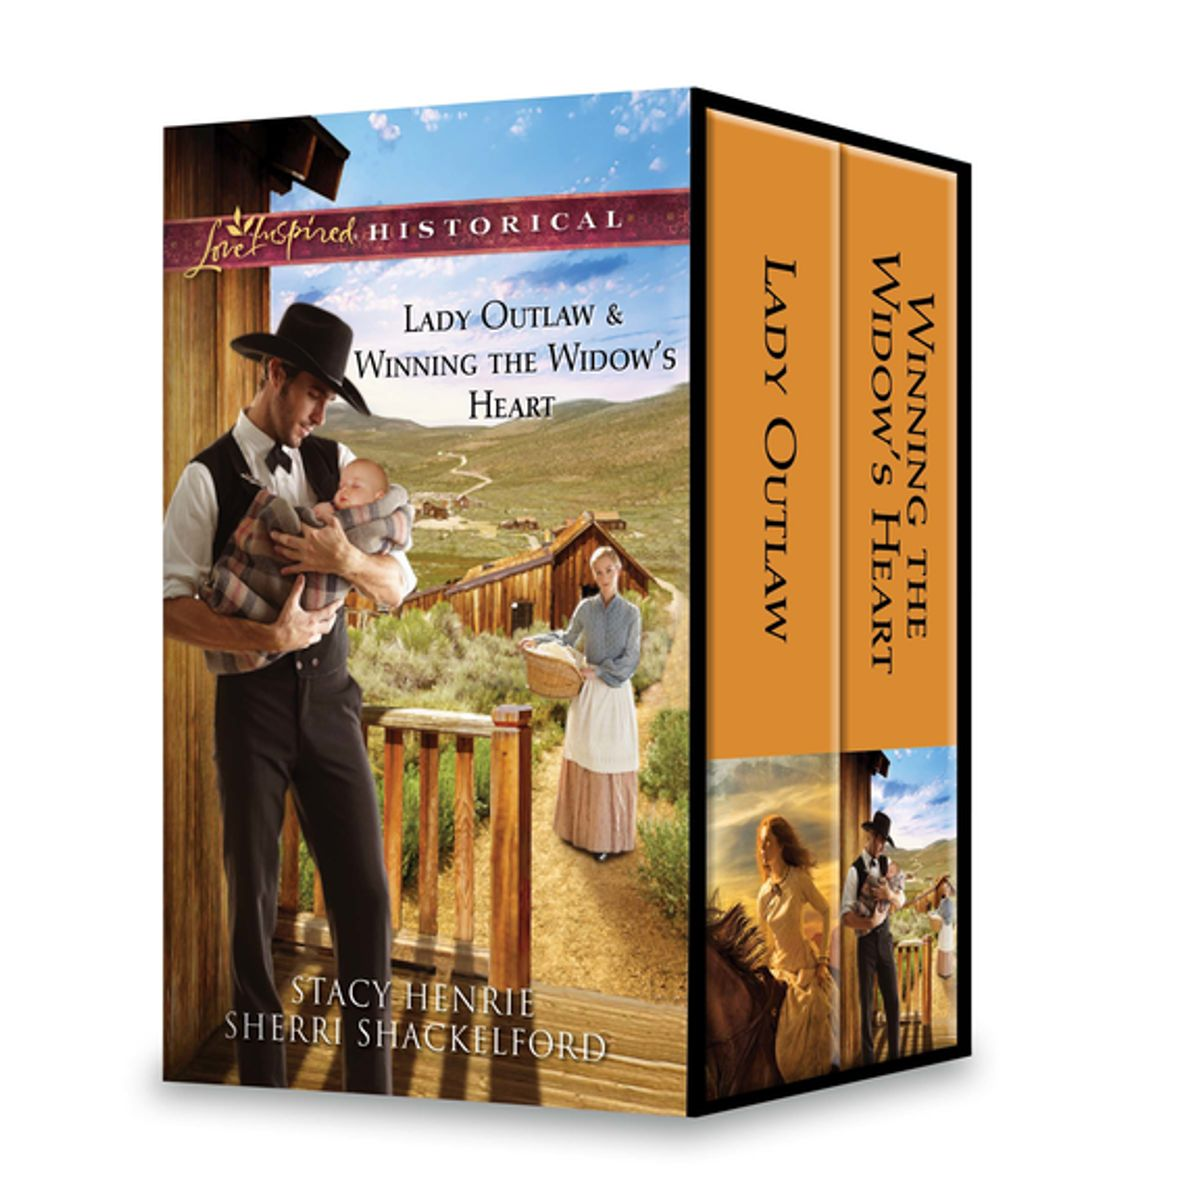 Lady Outlaw & Winning the Widow's Heart - eBook